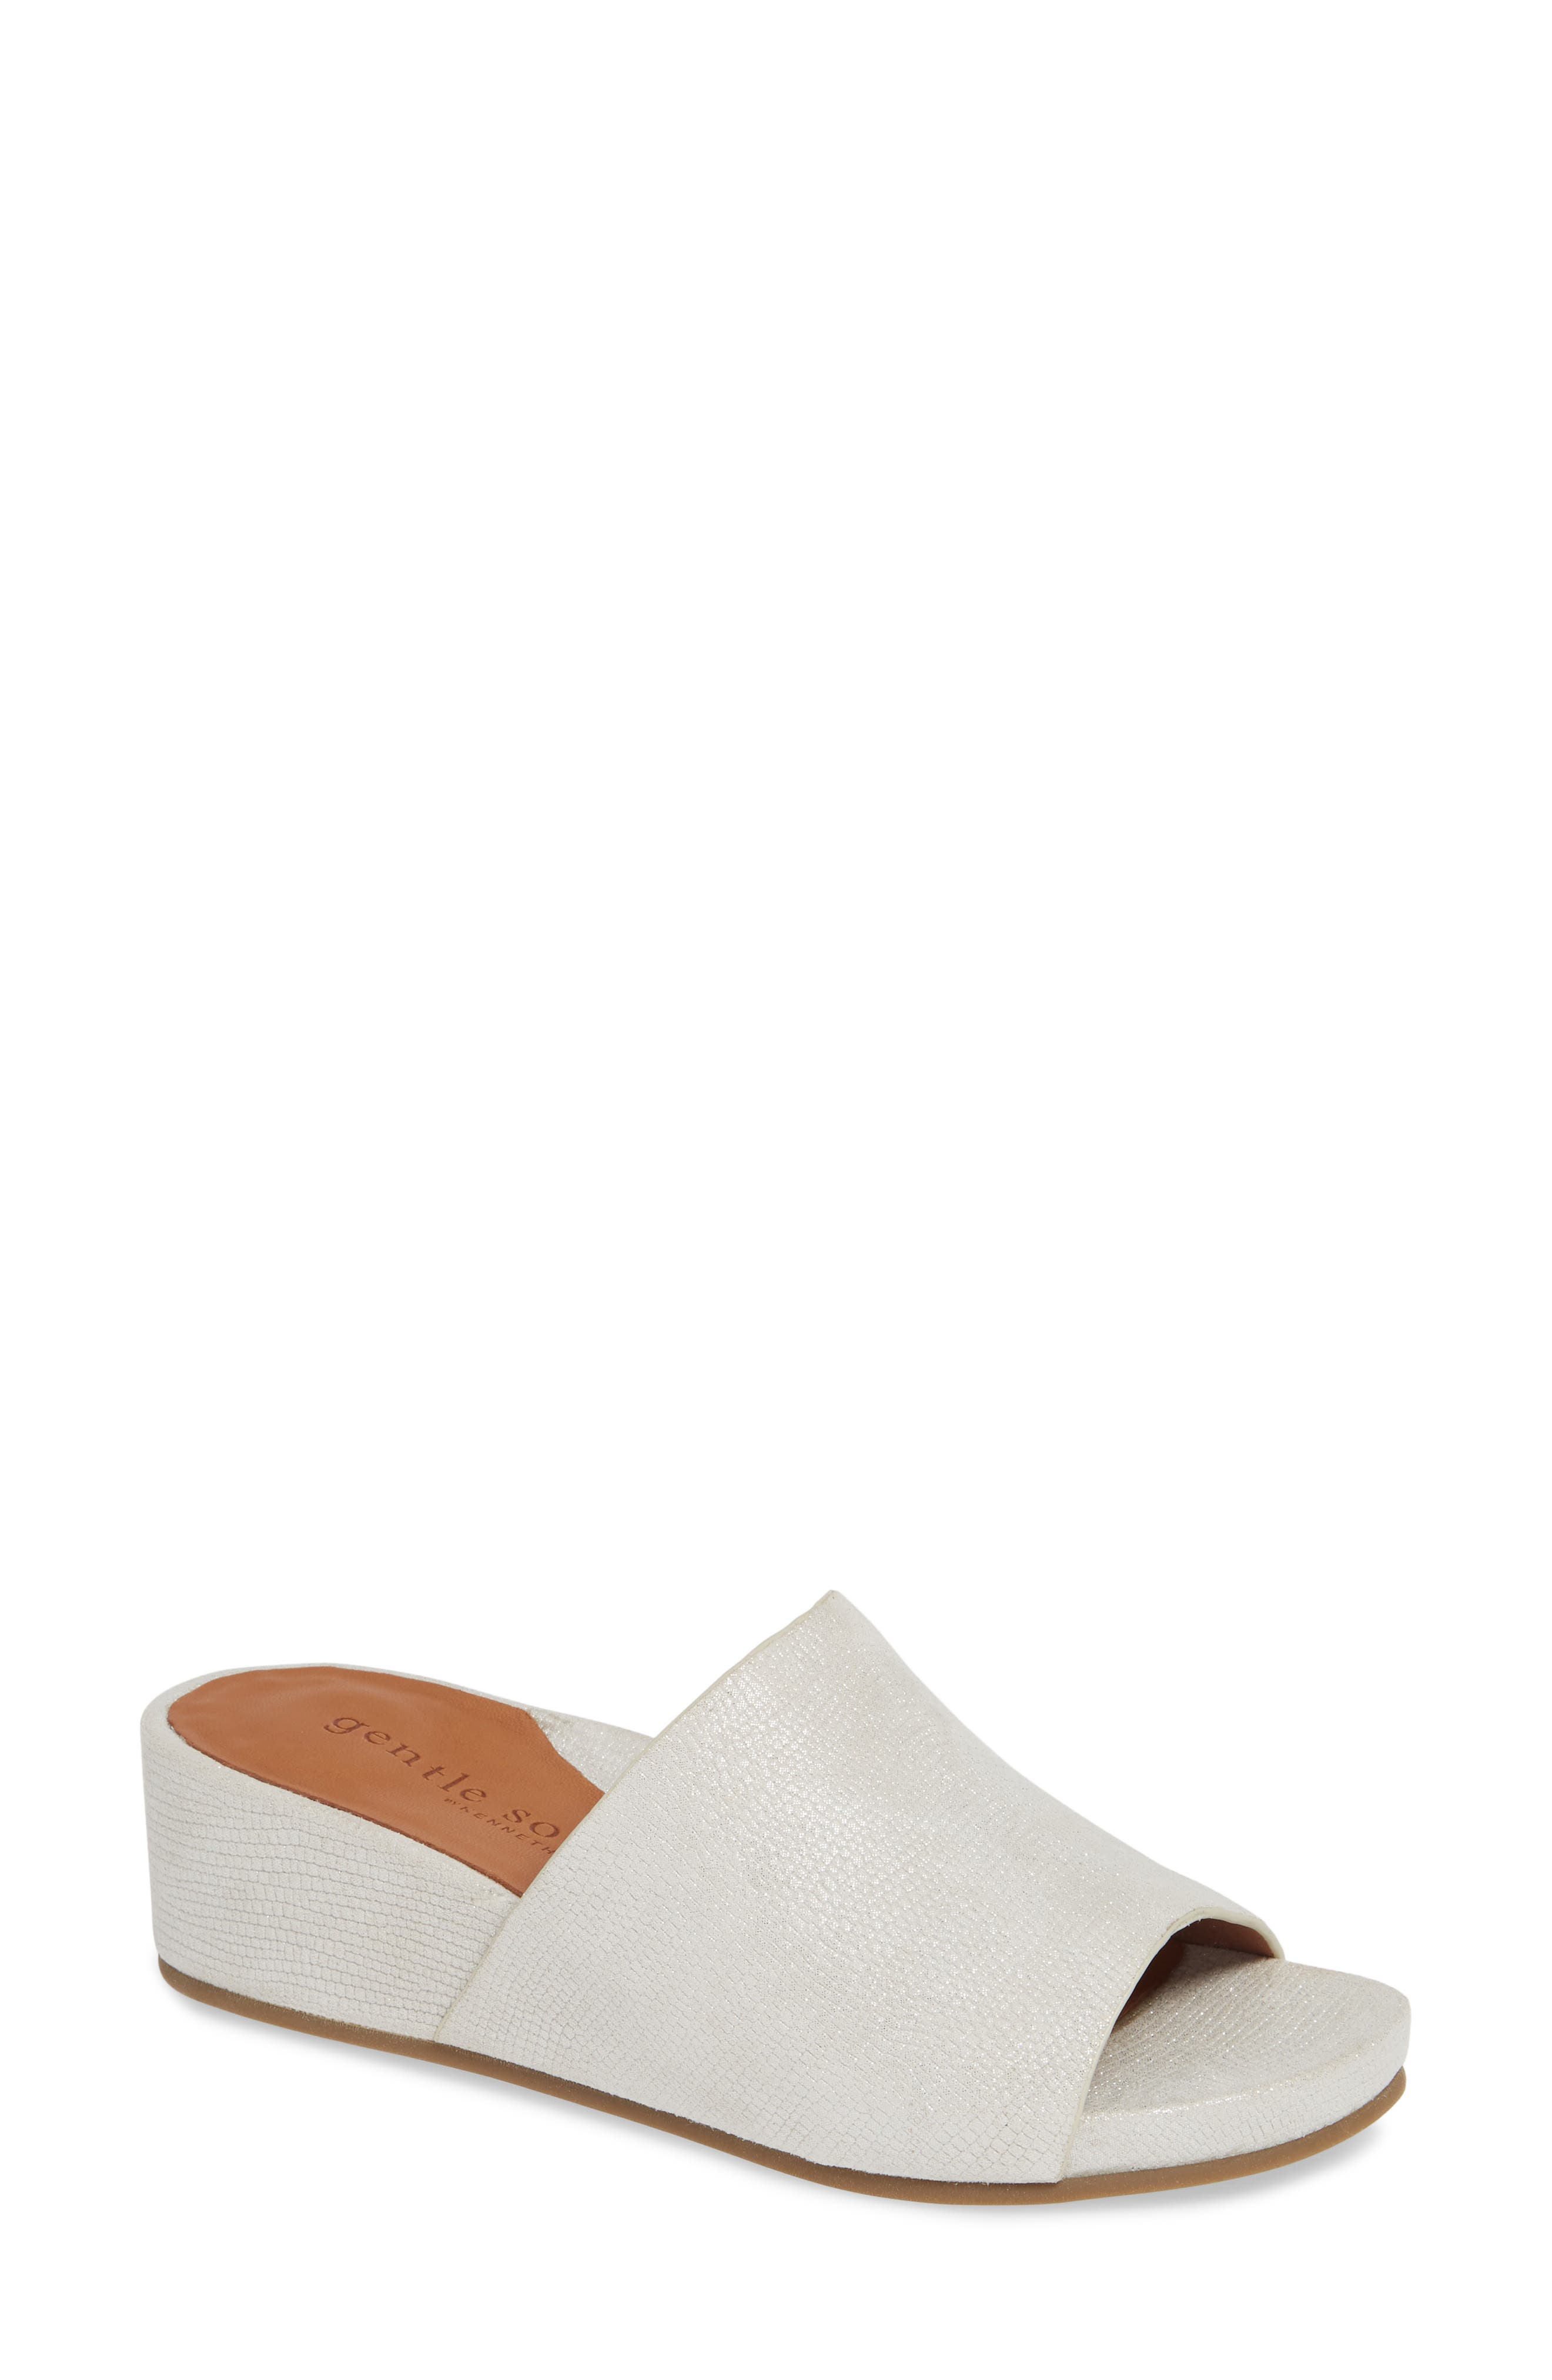 GENTLE SOULS BY KENNETH COLE Gisele Wedge Slide Sandal, Main, color, WHITE EMBOSSED LEATHER